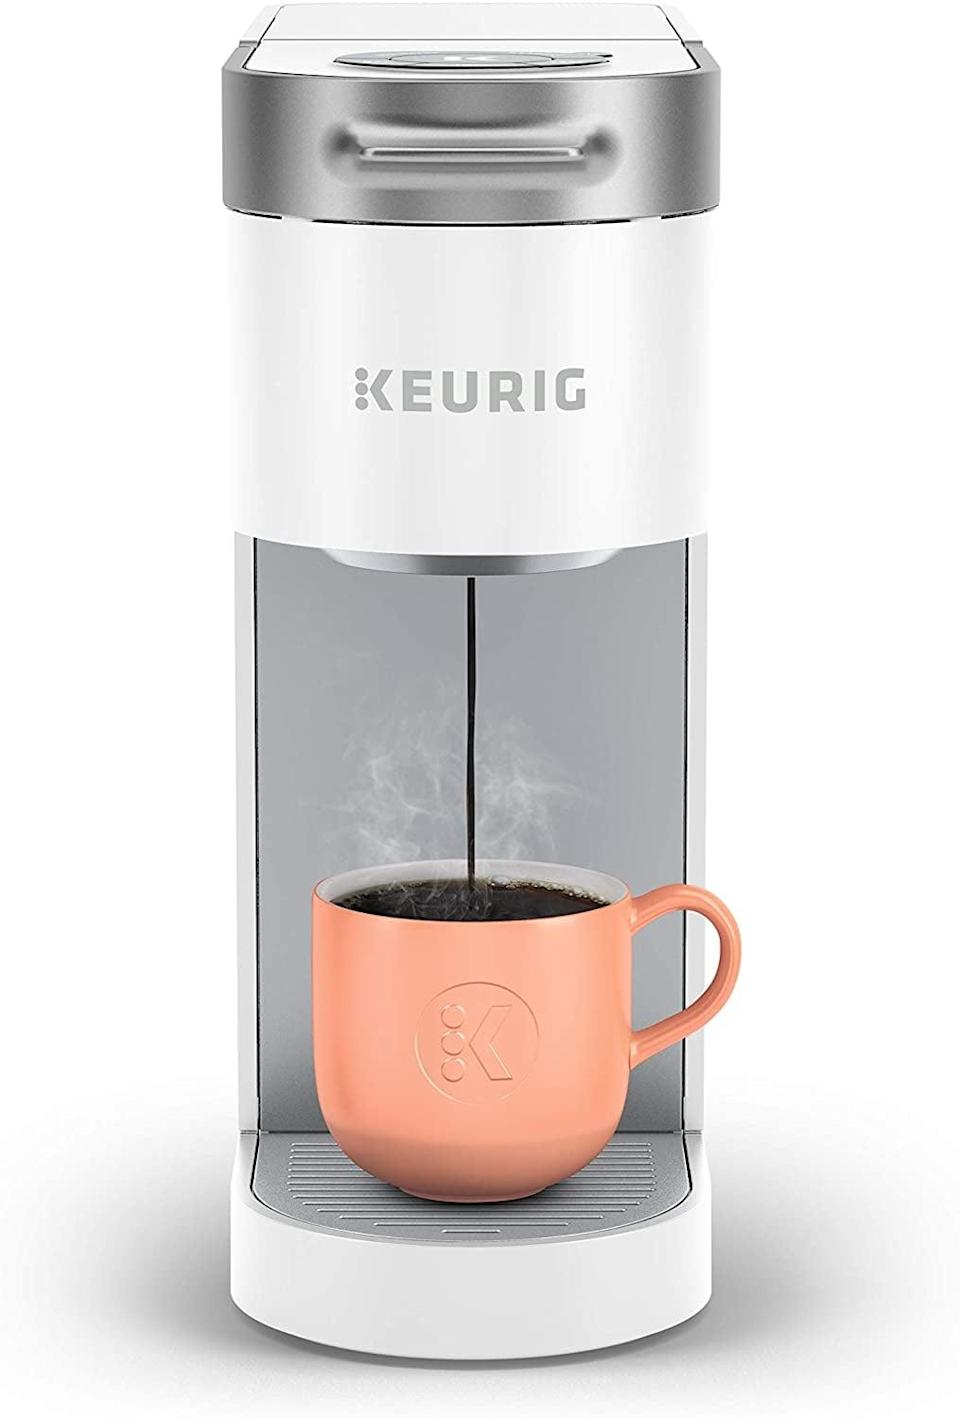 <p>If you have limited space, the <span>Keurig K-Slim Coffee Maker, Single Serve K-Cup Pod Coffee Brewer, White</span> ($80, originally $110) is a sleek coffee maker that gets the job done!</p>